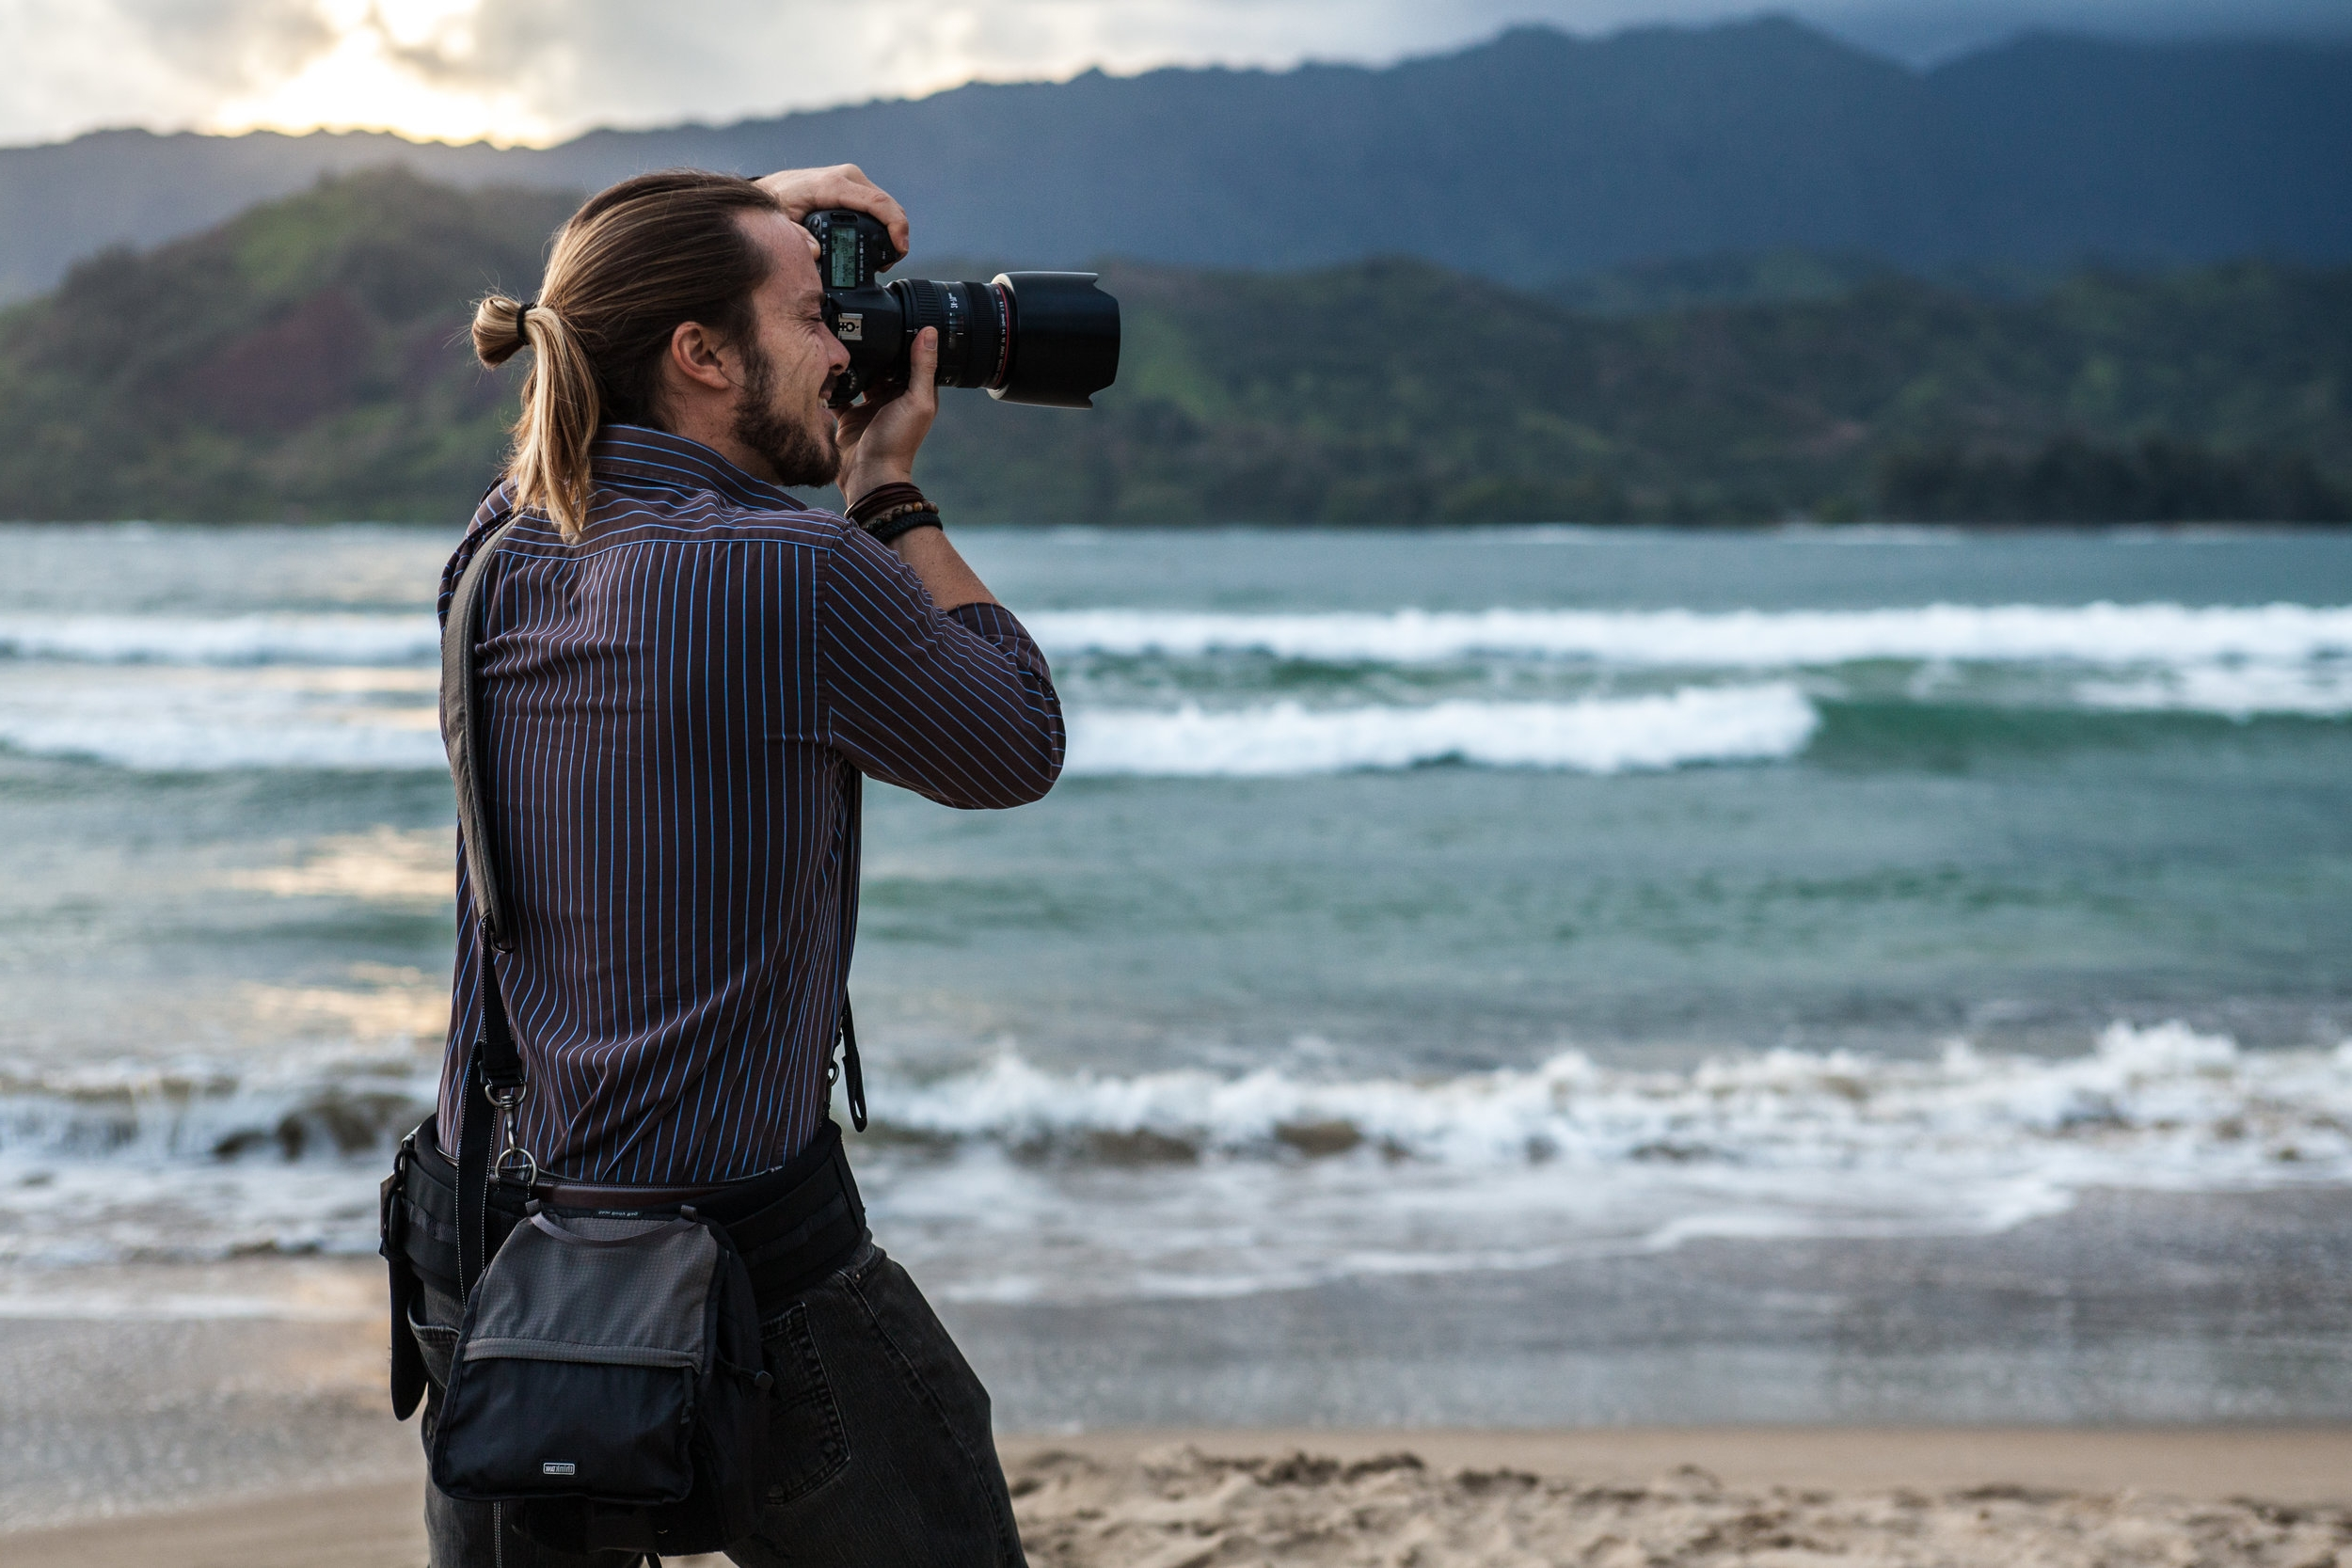 Michael Wheeler photographing on the beach.